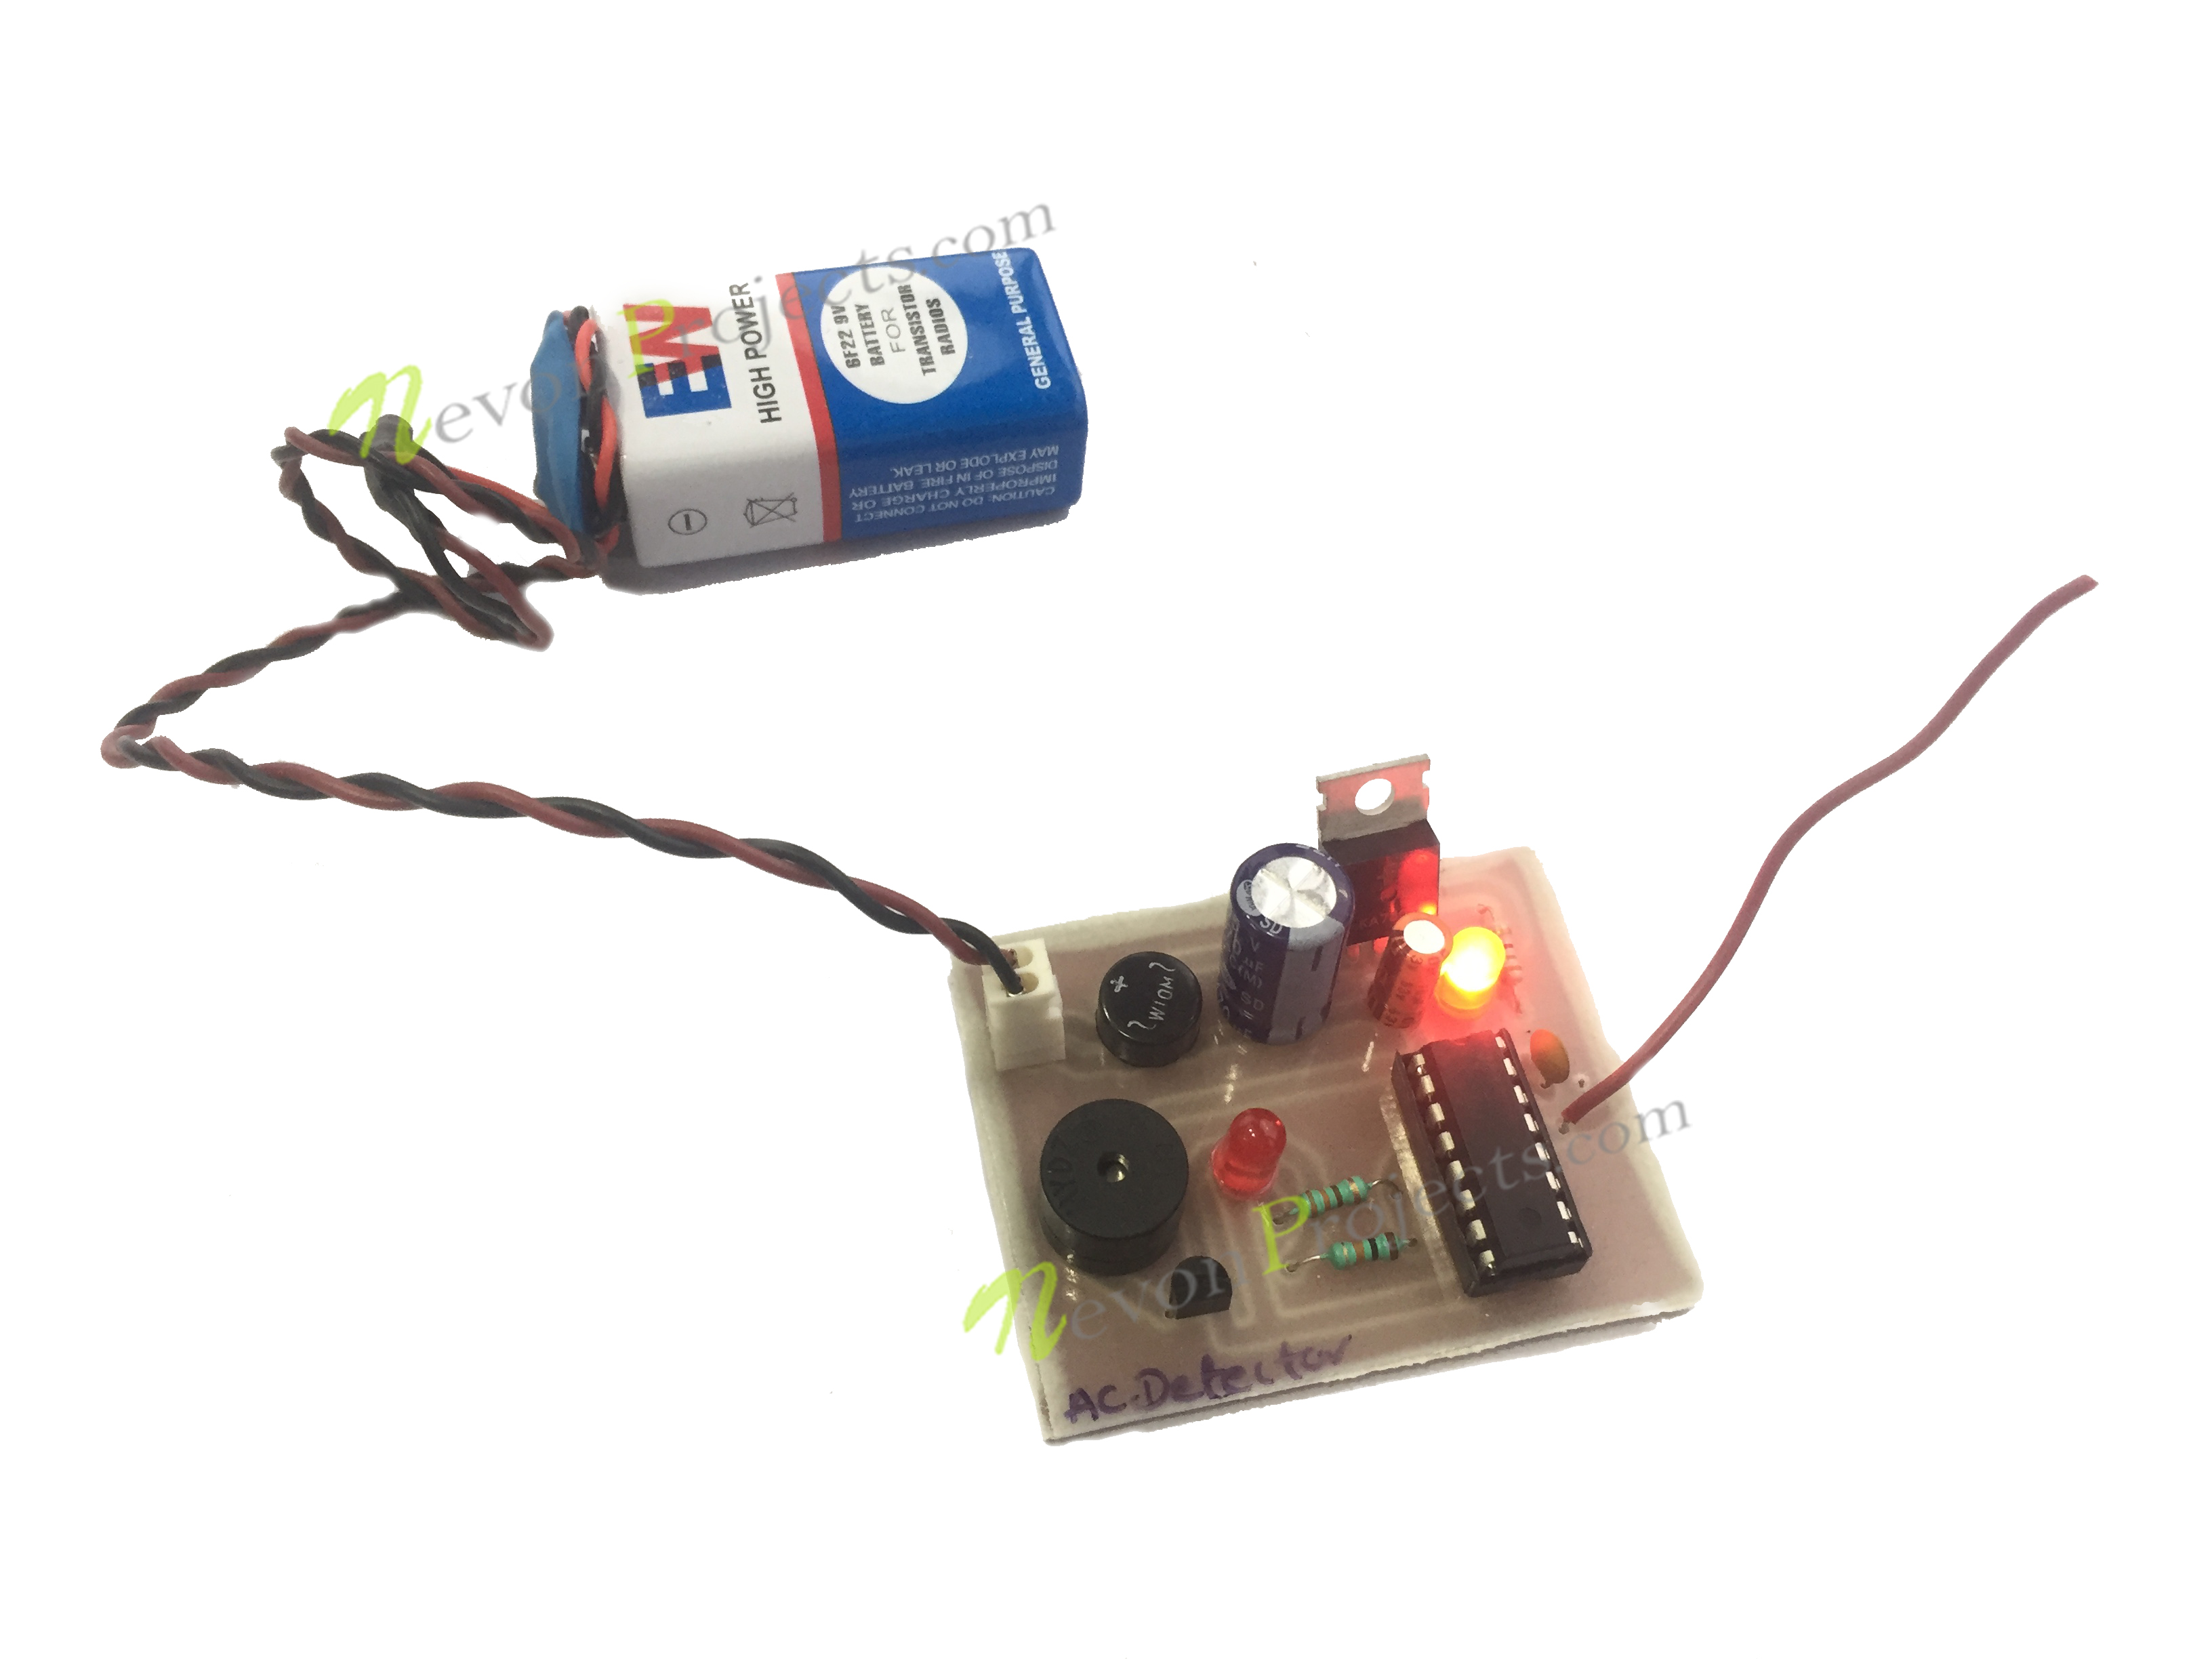 Wireless Ac Power Detector Project Circuit Today Electronics Mini Projects Diagram Ask Home